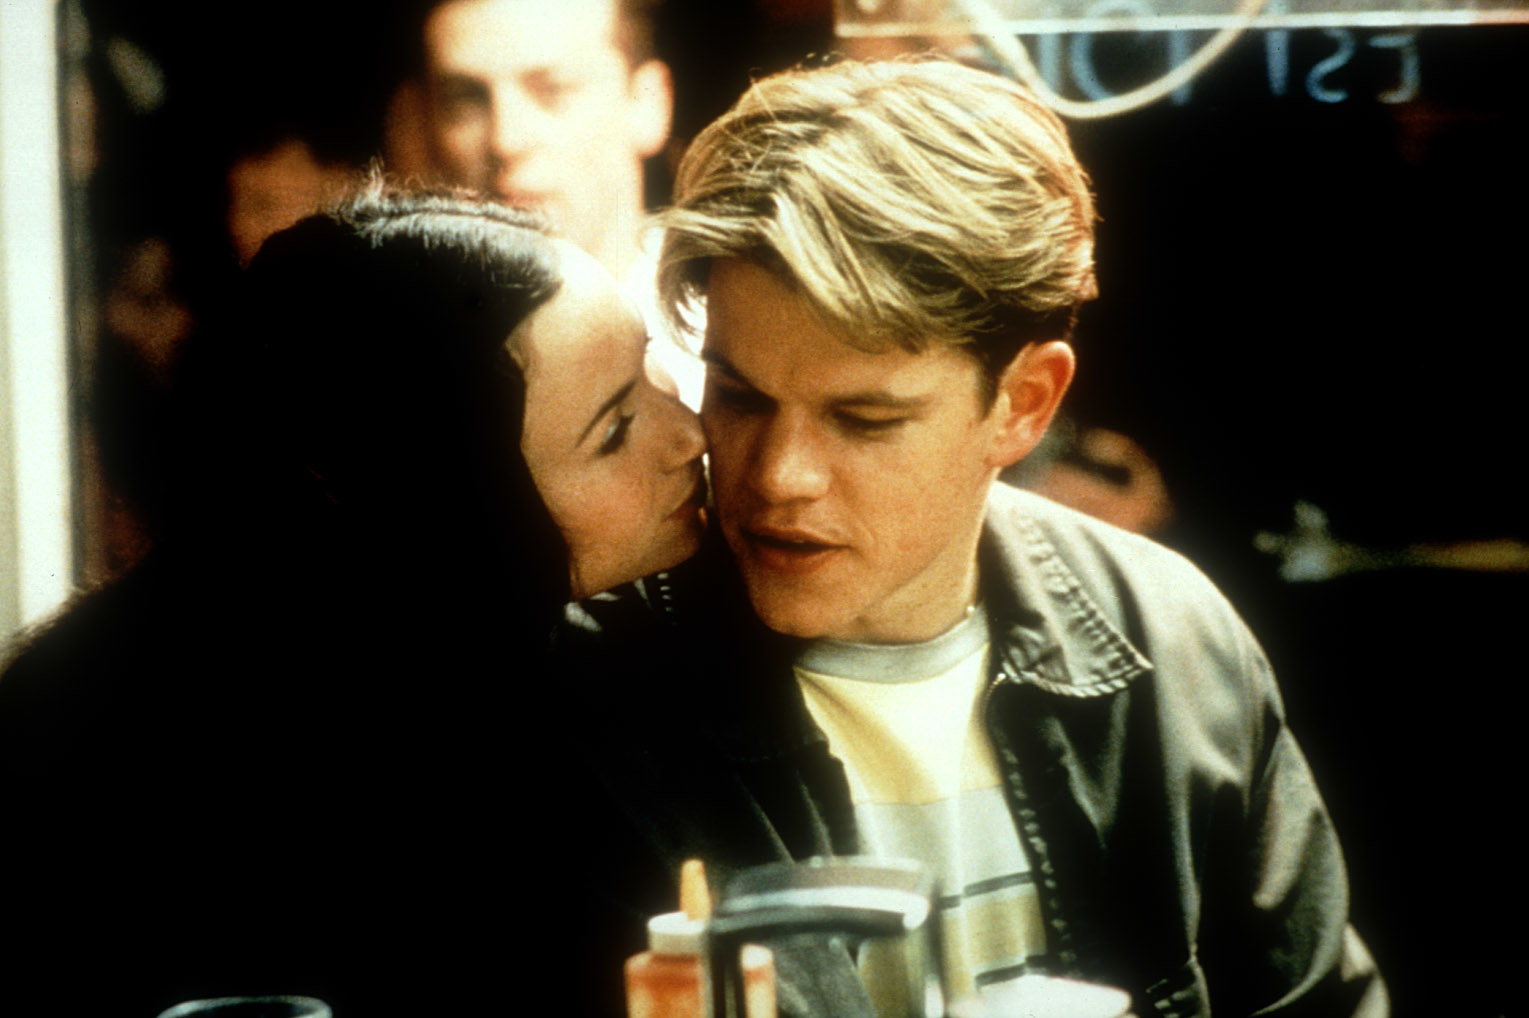 Matt Damon being kissed on the cheek in a scene from Good Will Hunting